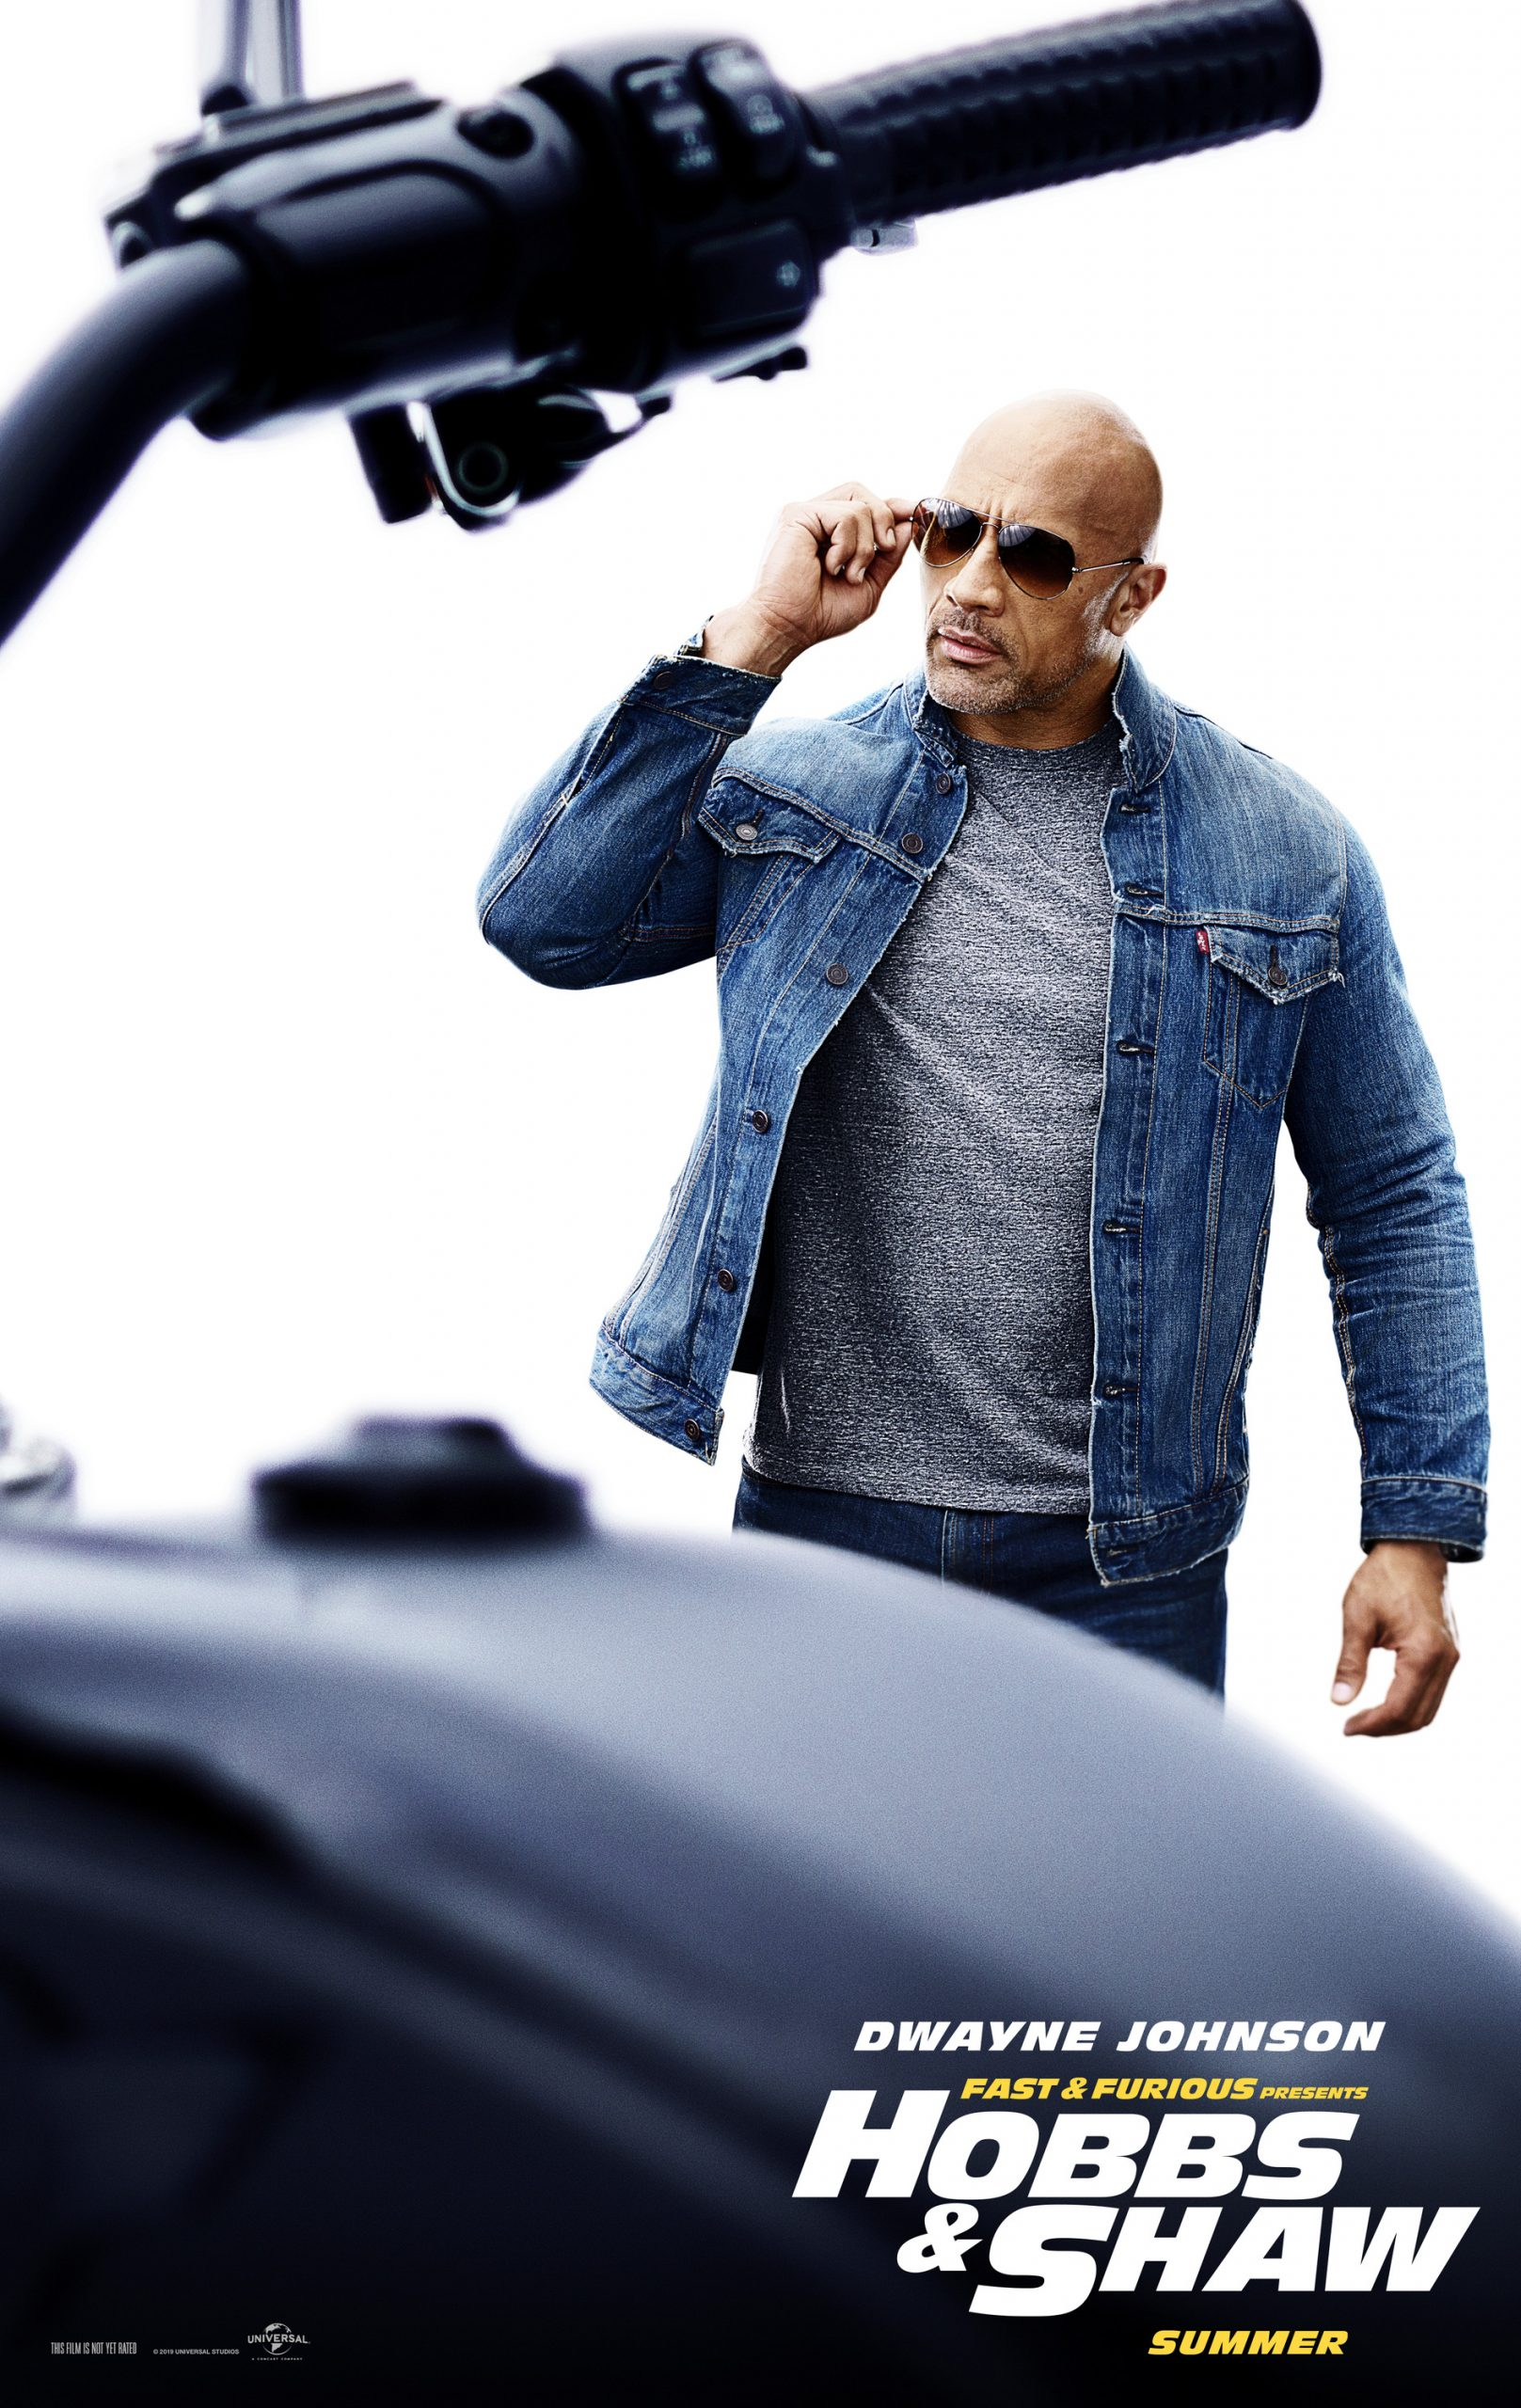 Fast and Furious presents Hobbs and Shaw Character Posters Dwayne Johnson as Luke Hobbs